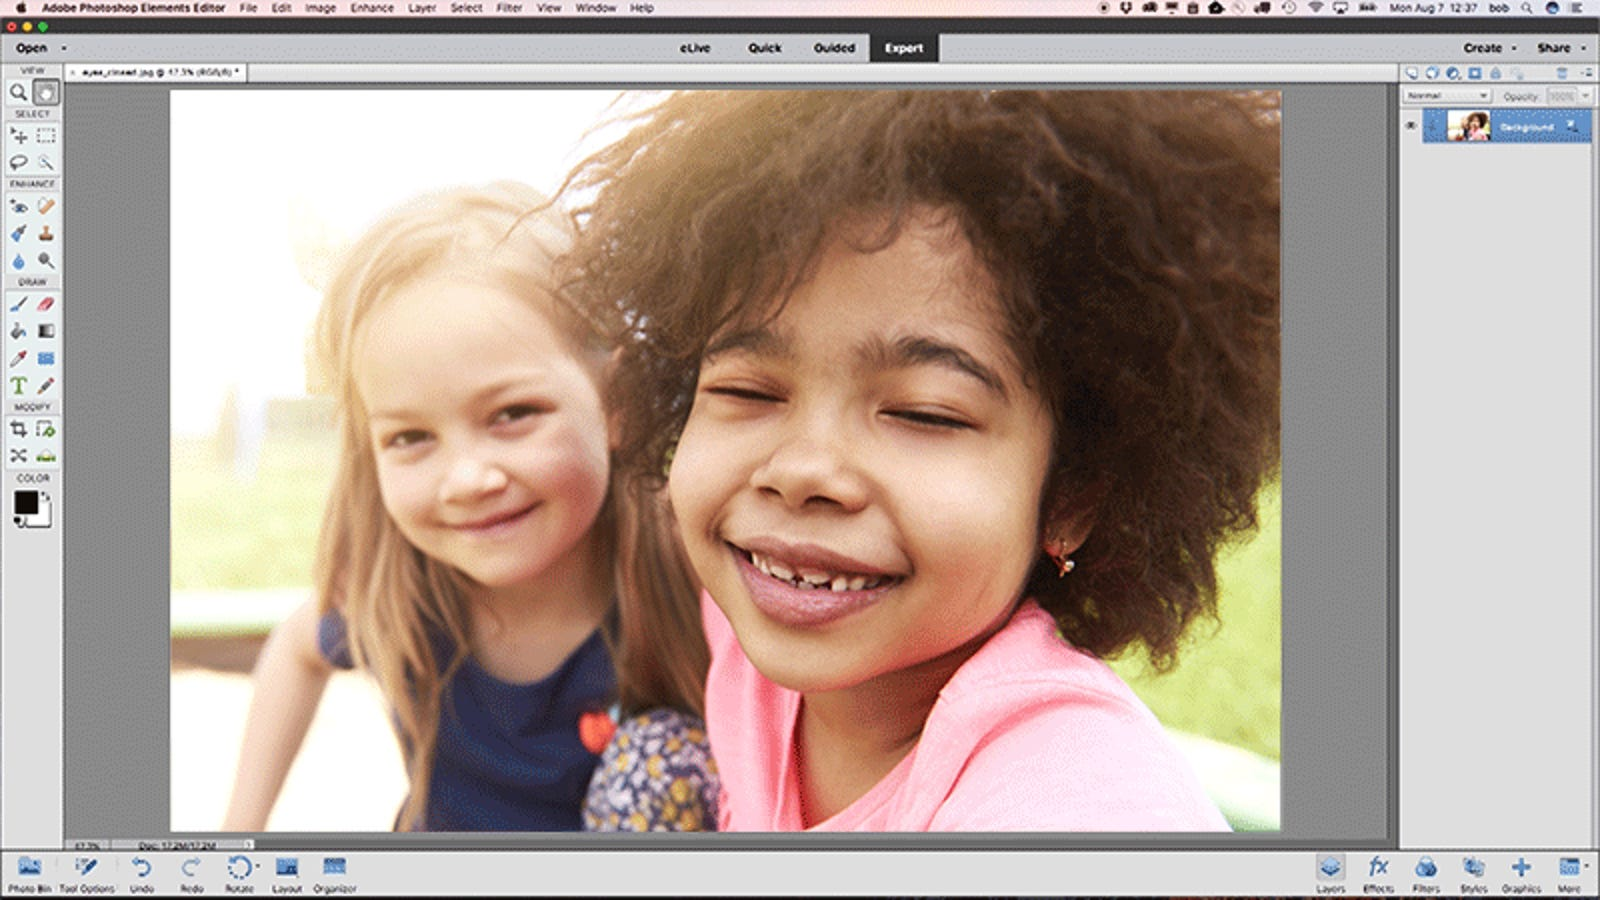 Using AI Smarts, Photoshop Elements Can Now Automatically Open